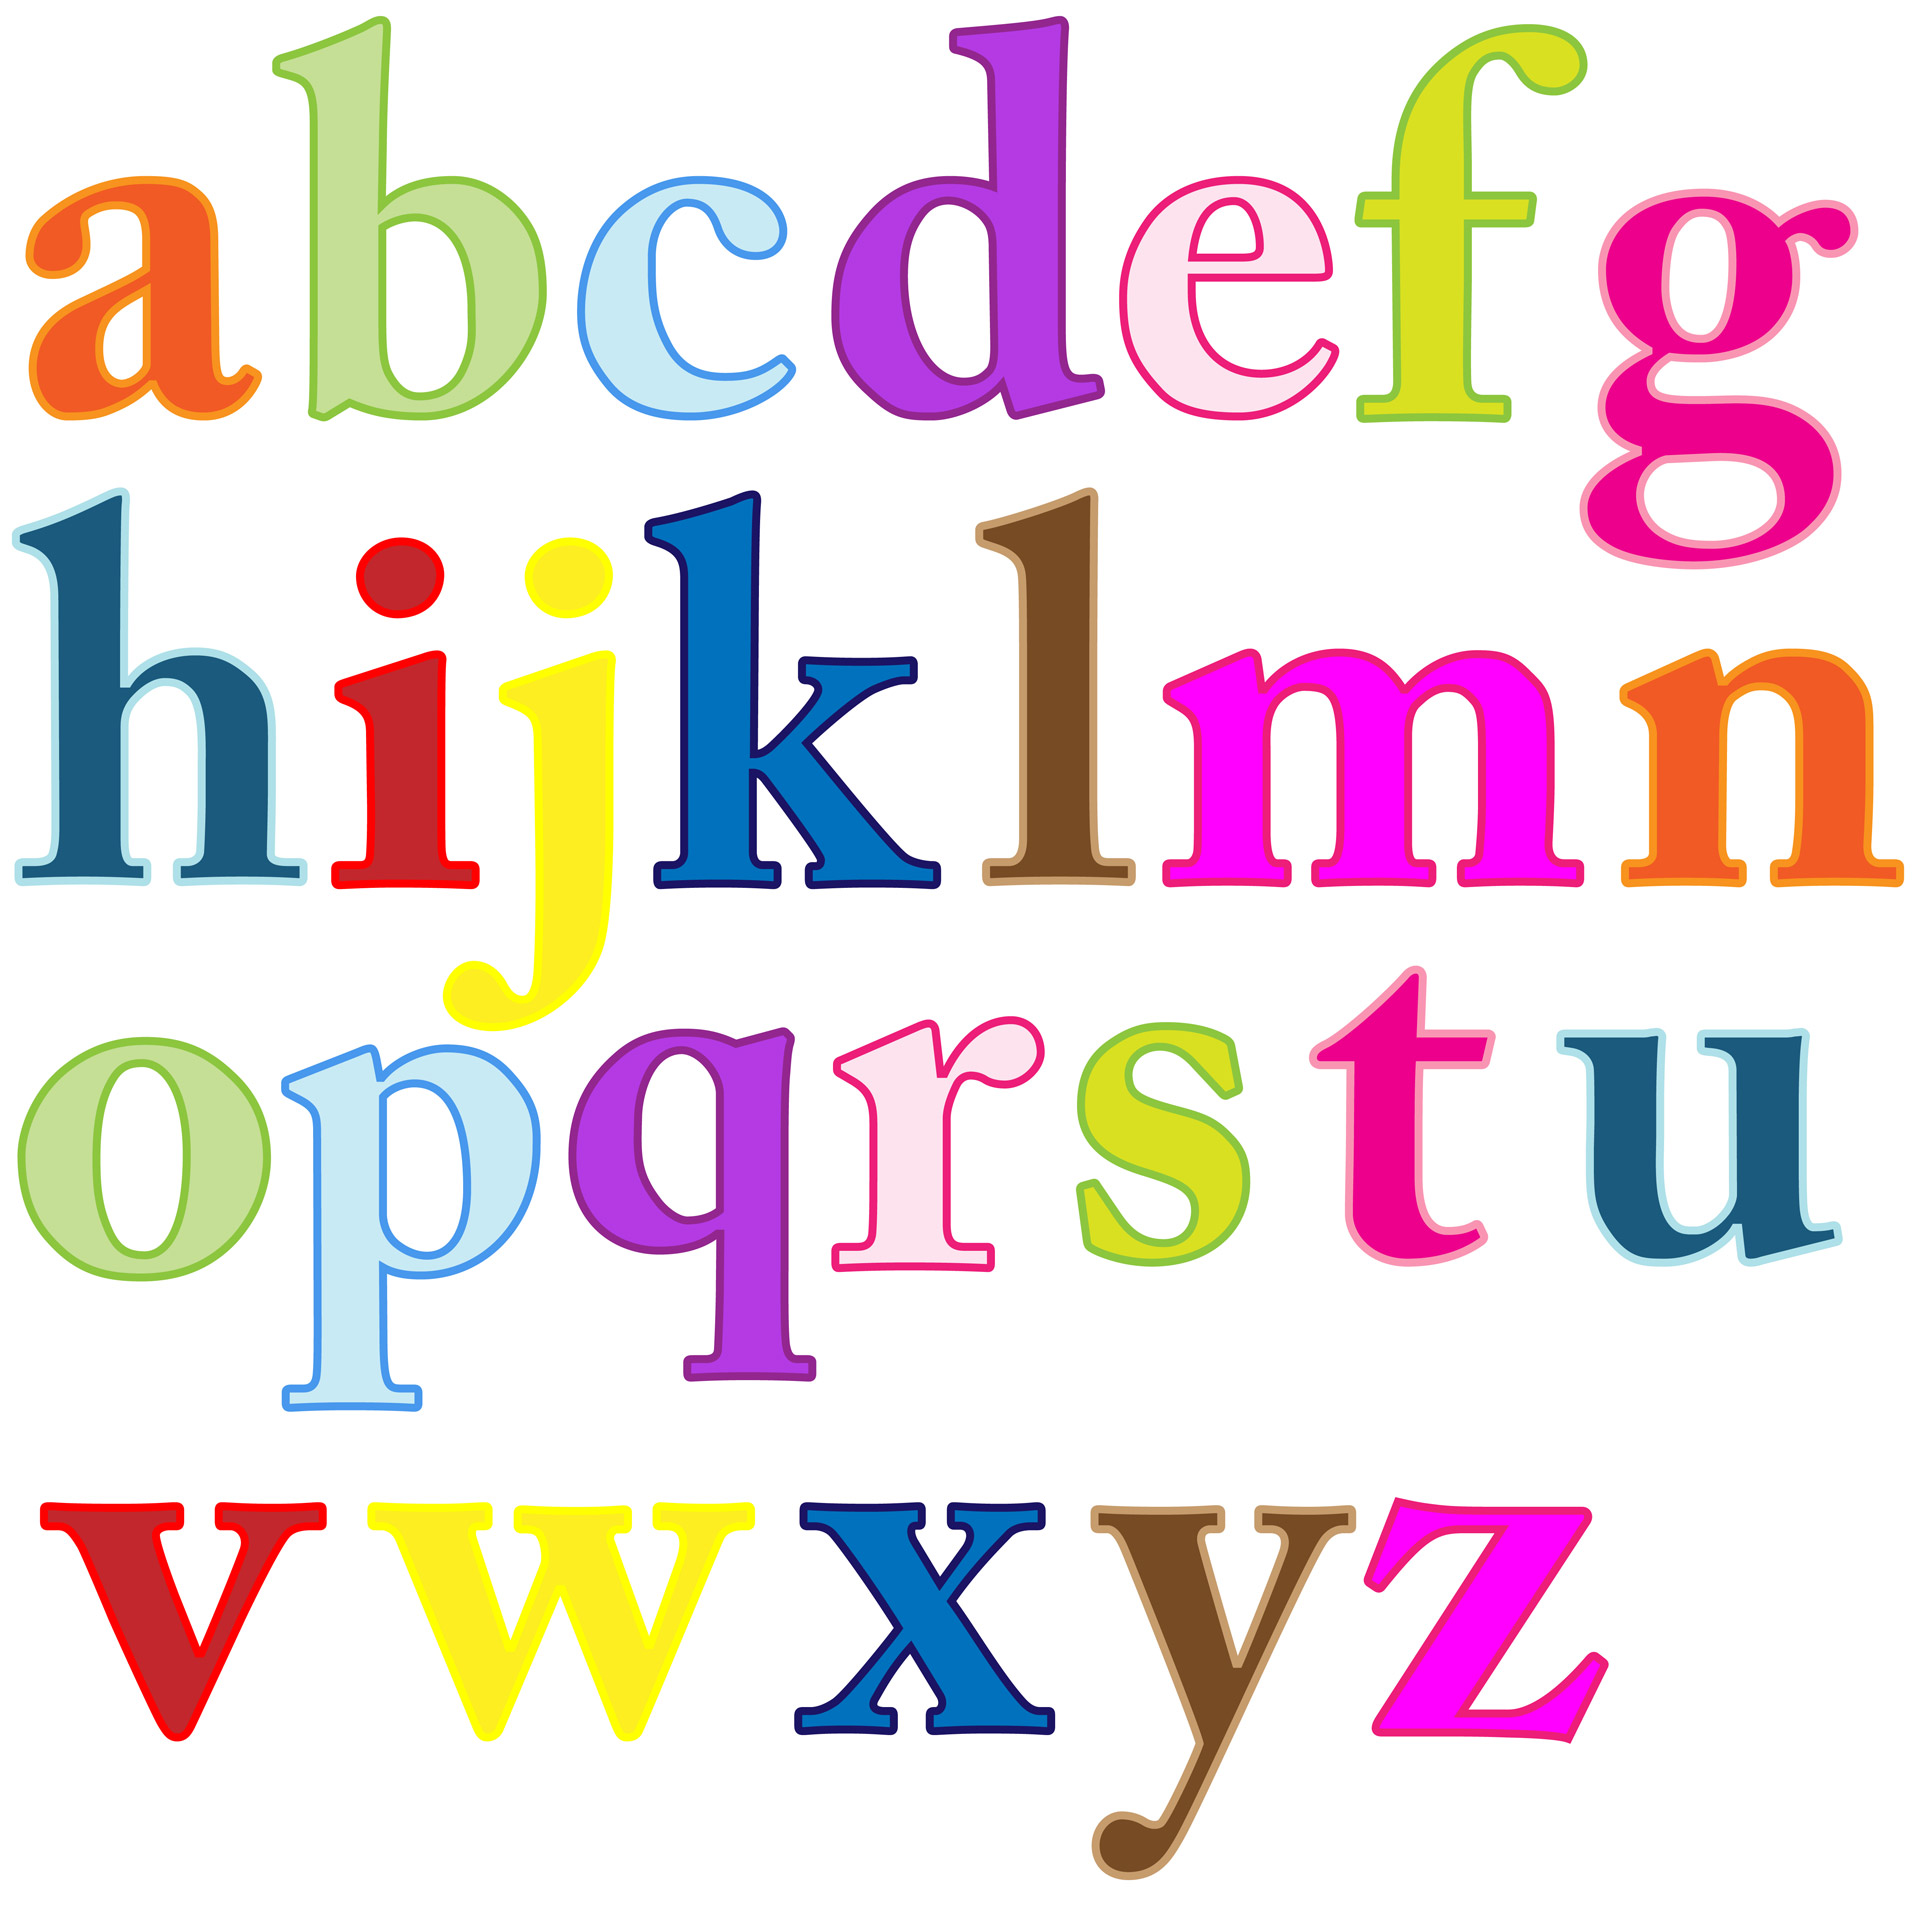 1920x1920 Collection Of Alphabet Letters Clipart Buy Any Image And Use It